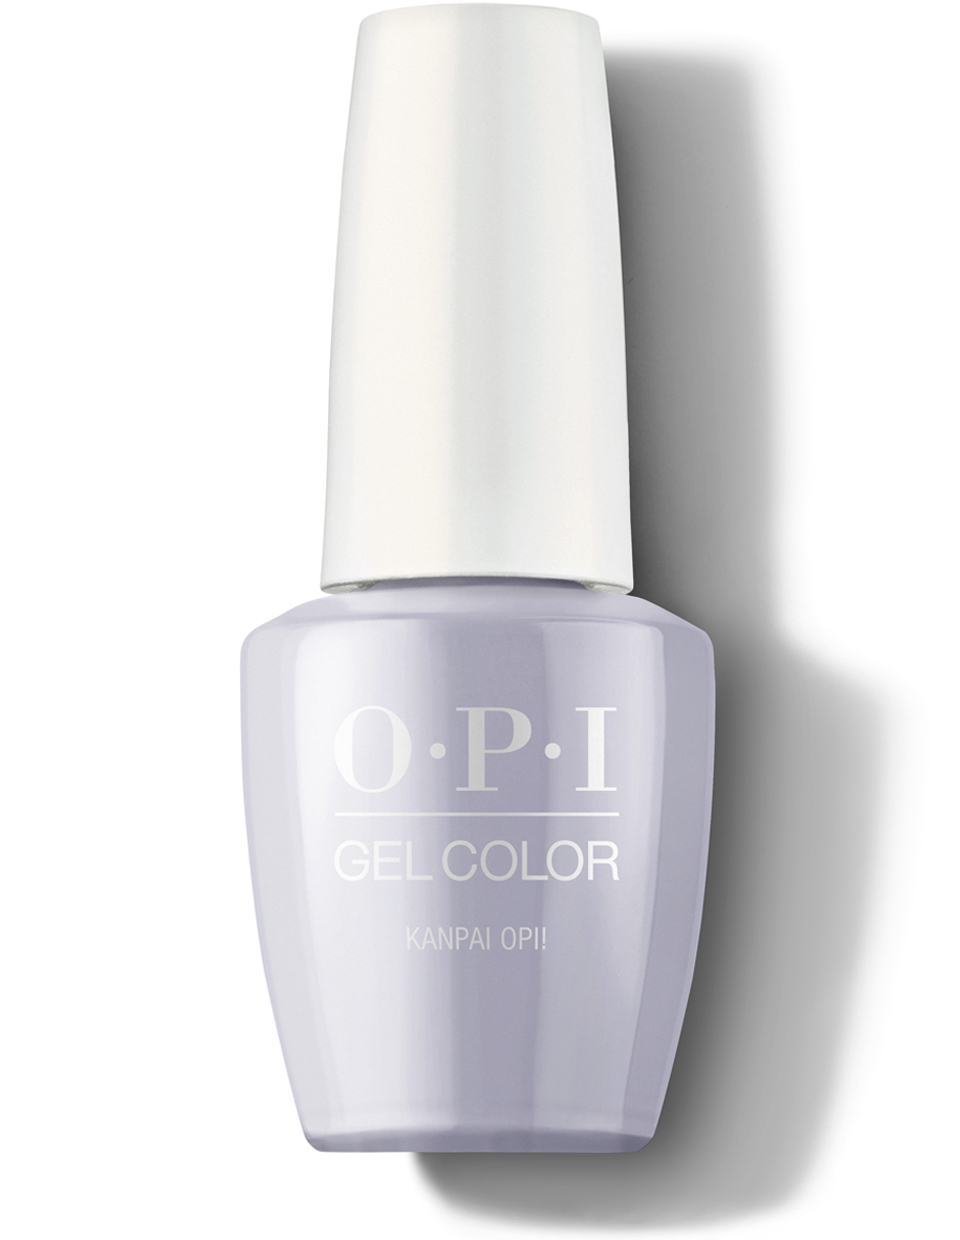 Opi gel products for nails